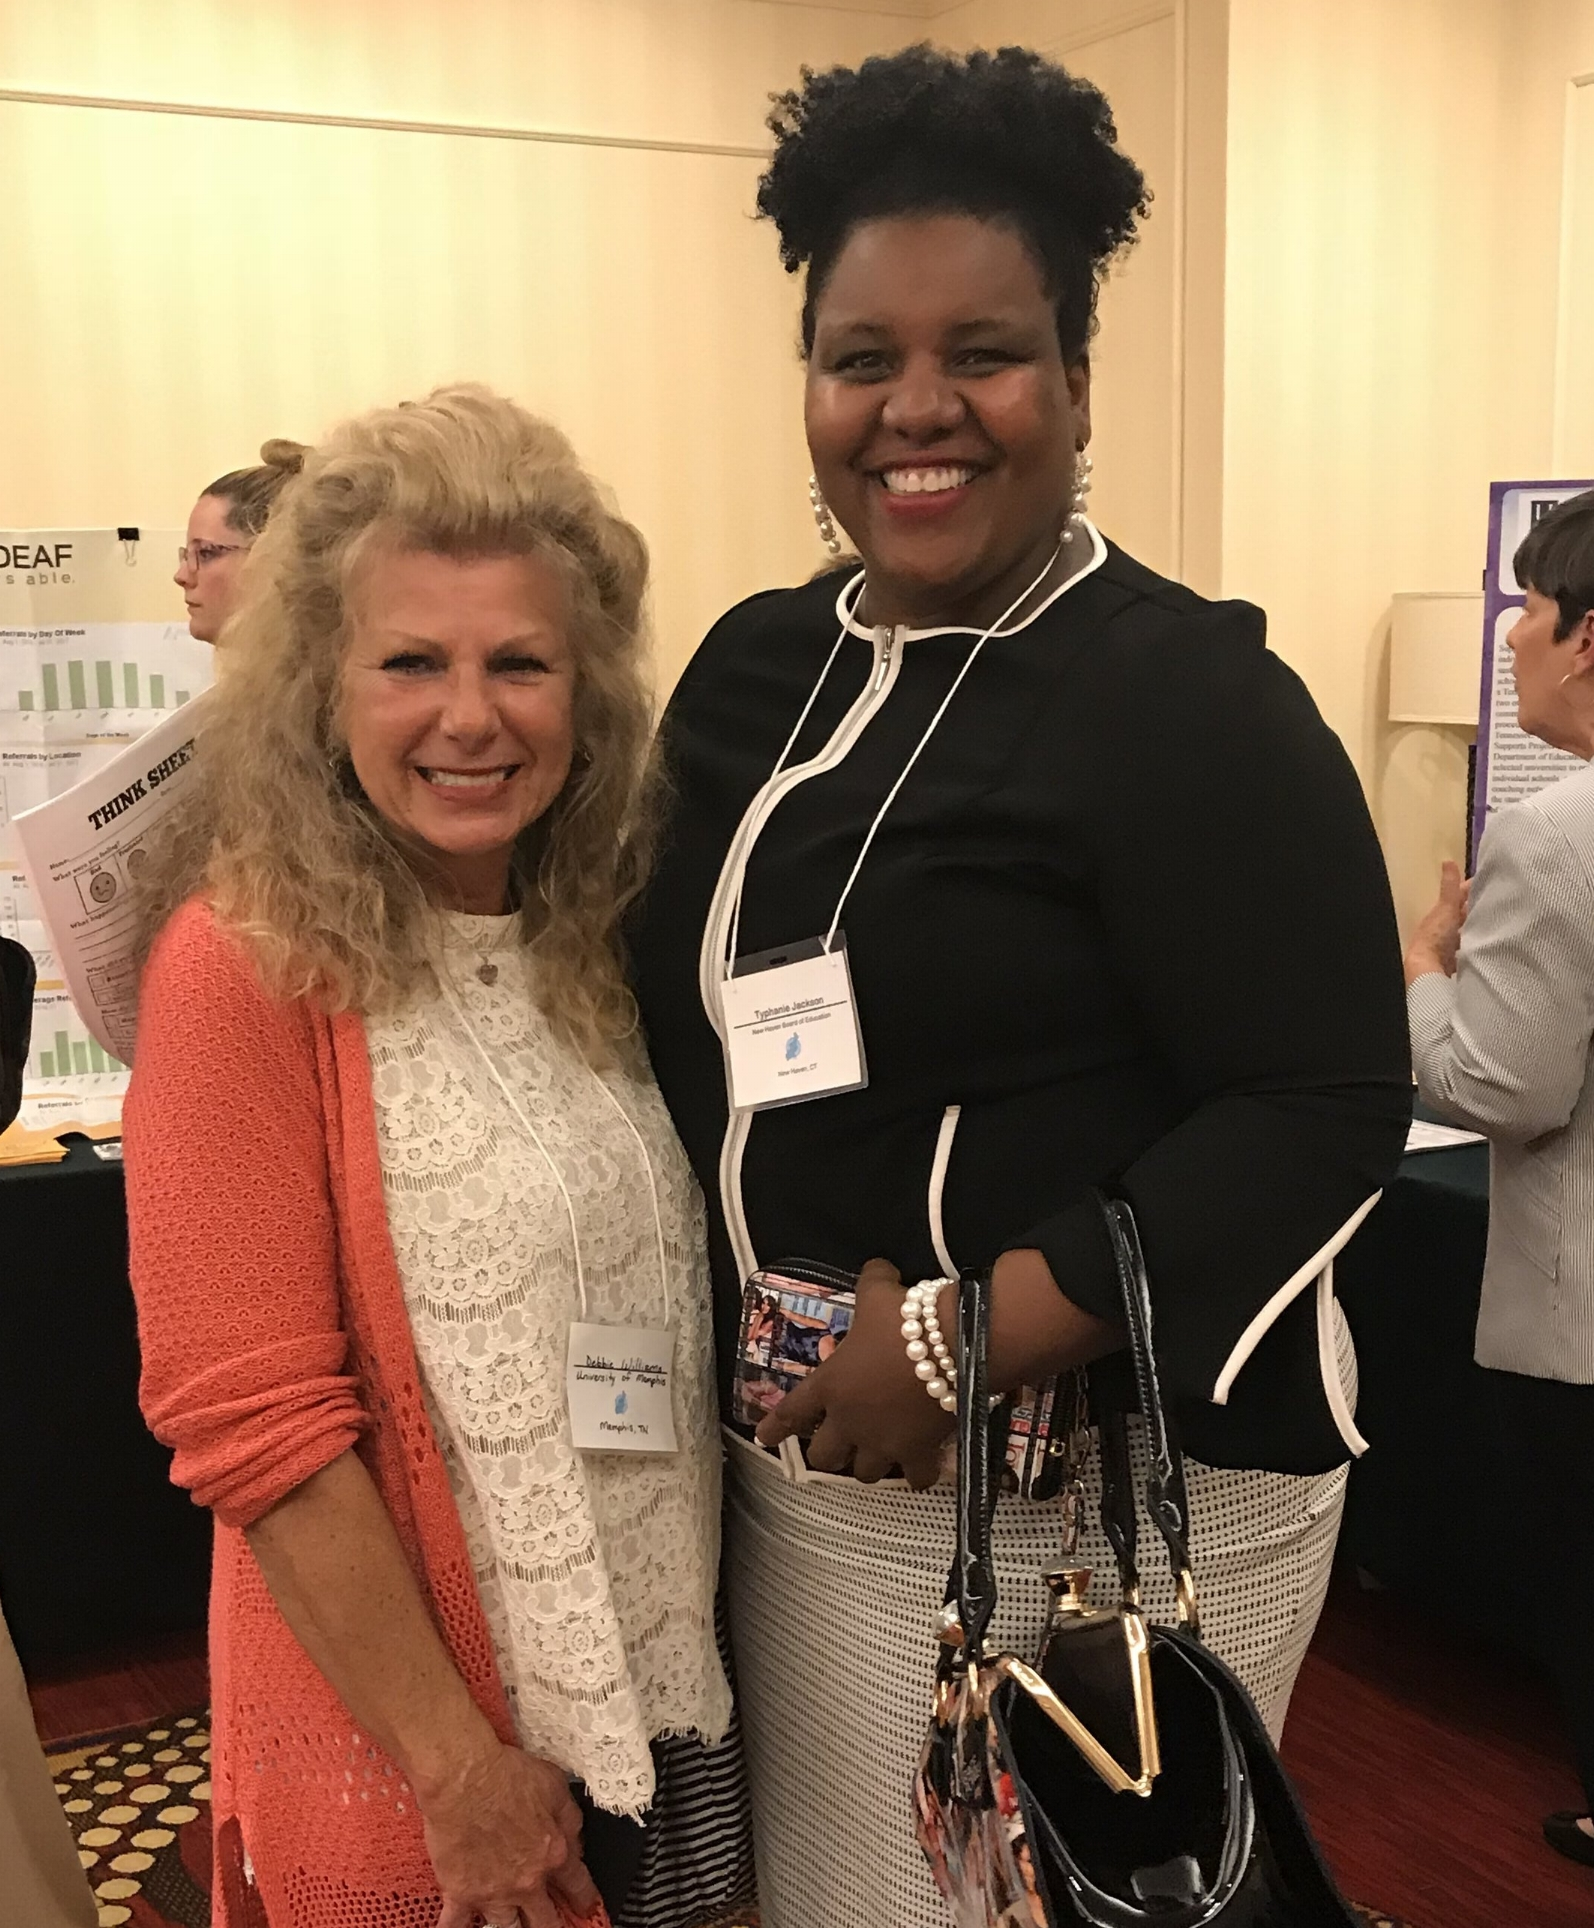 Debbie Williams pictured with one of her favorite conference speakers, Typhanie Jackson of New Haven Public Schools